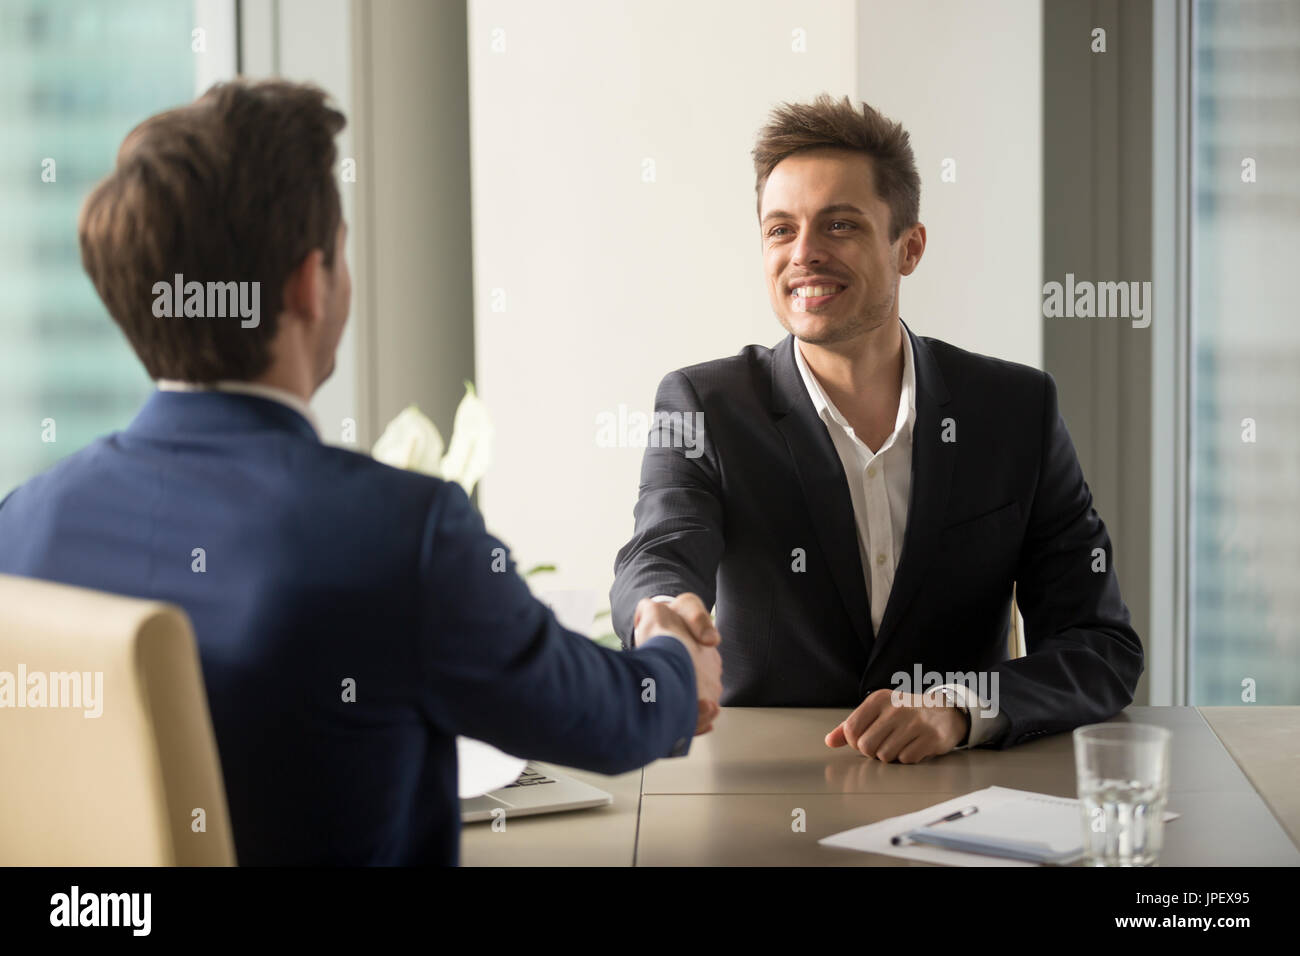 Two cheerful businessmen shaking hands, starting job interview o - Stock Image